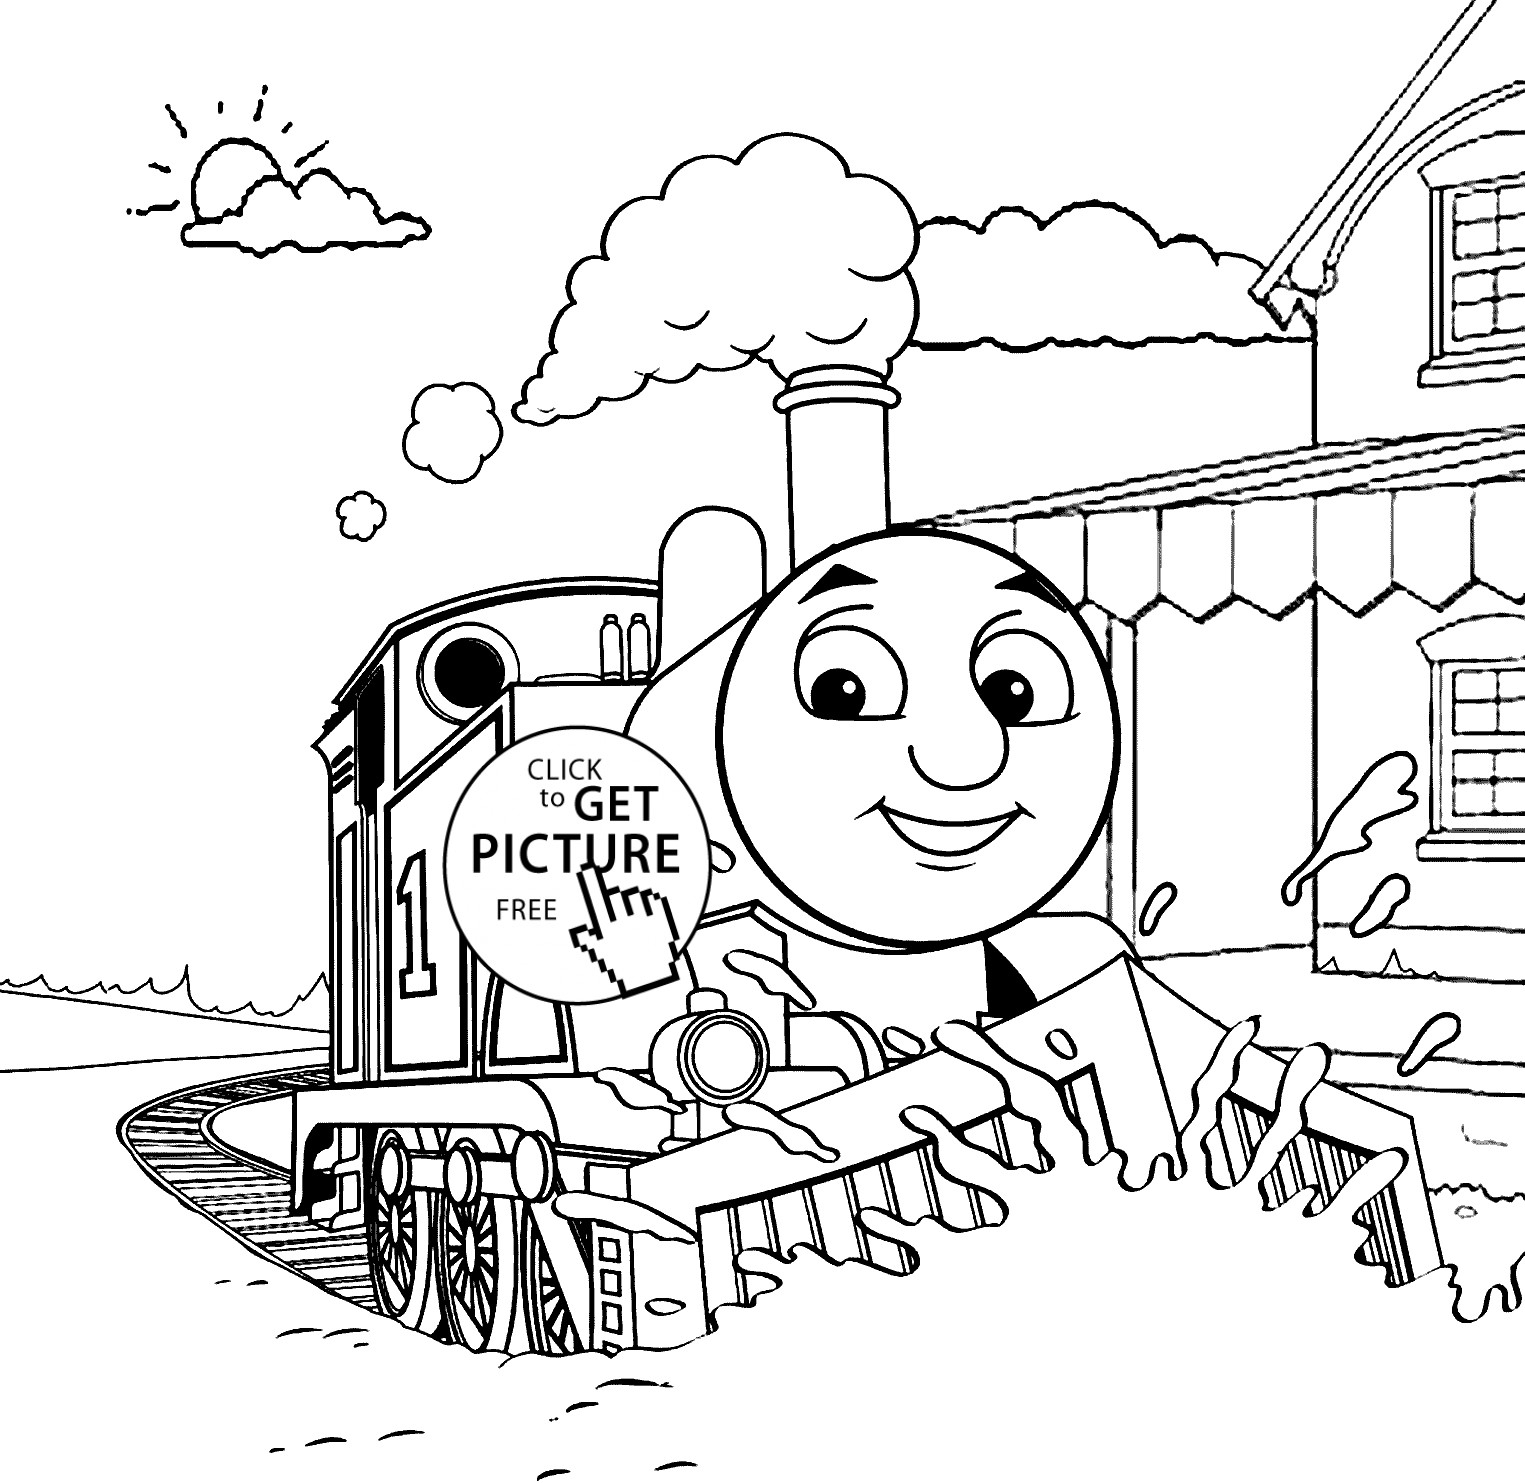 Thomas And Friends Coloring Pages Coloring Book Ideas Thomas And Friends Coloring Pages Save For